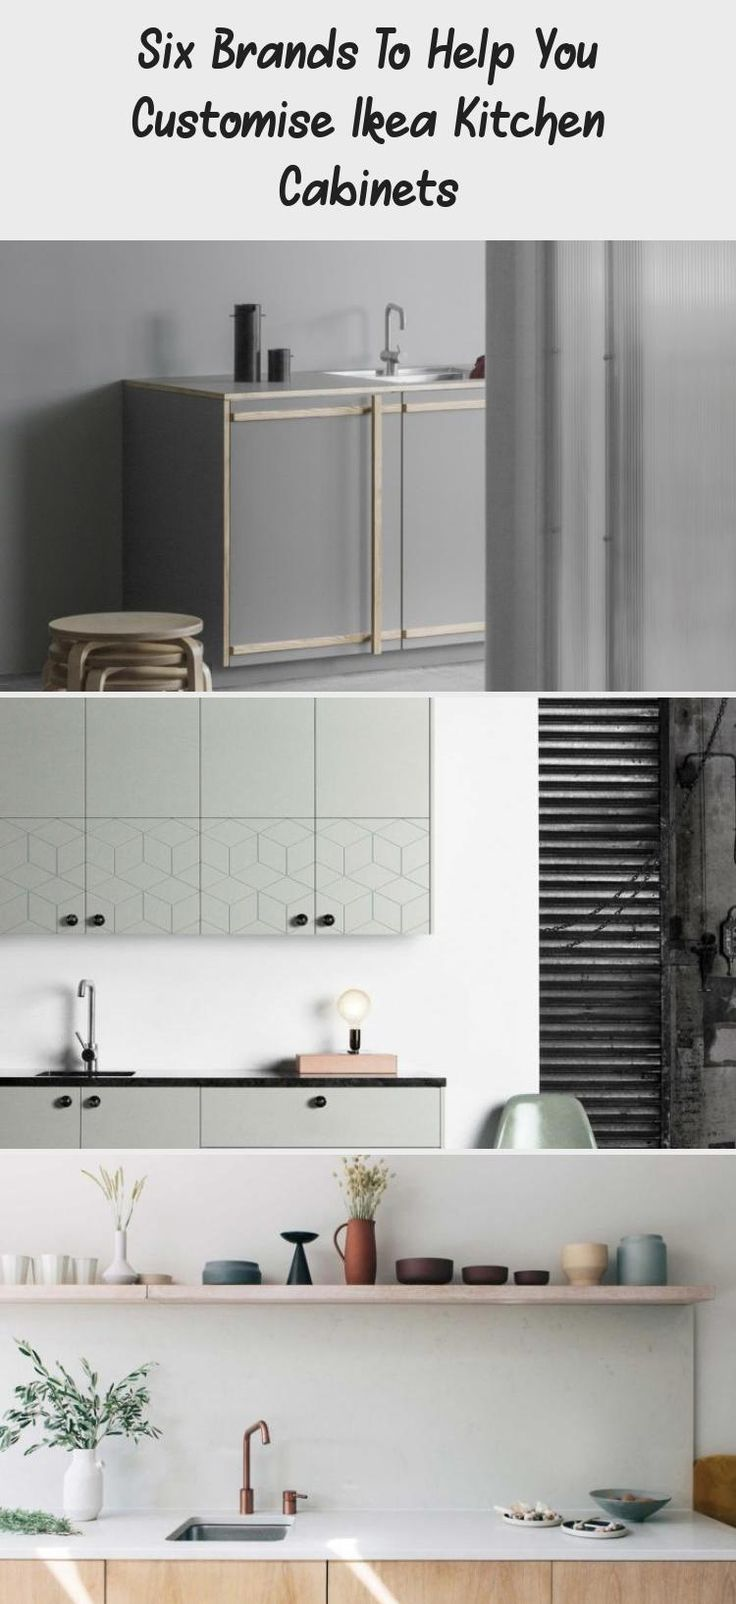 Six Brands To Help You Customise Ikea Kitchen Cabinets Ikea Kitchen Cabinets Kitchen Cabinet Design Ikea Kitchen